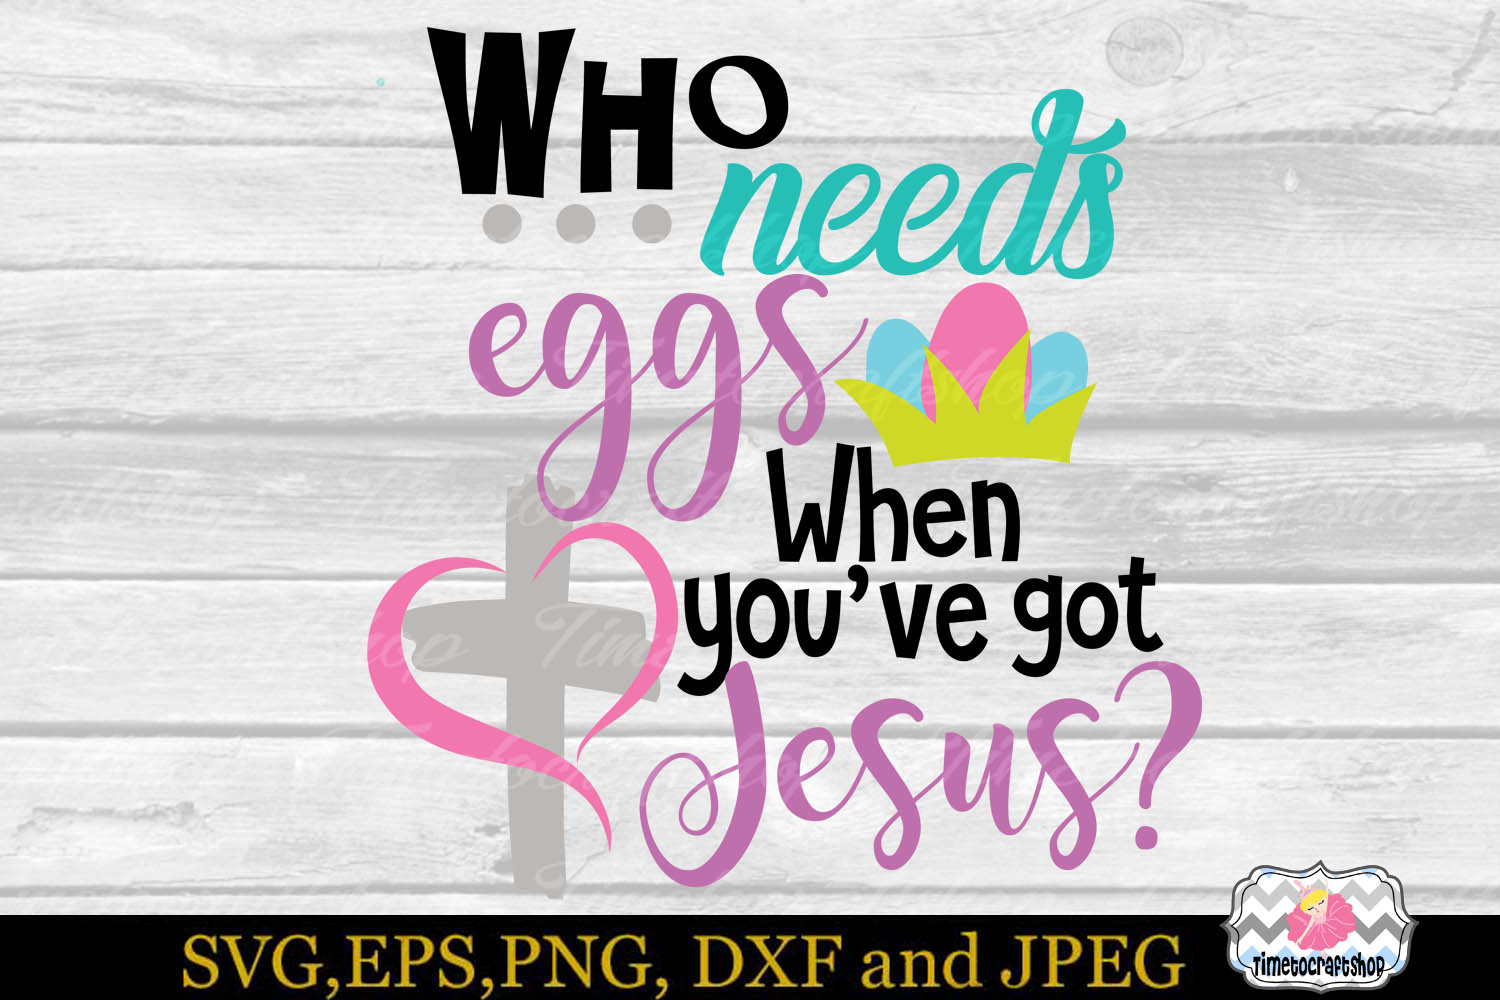 SVG, Eps, Dxf & Png Who needs eggs when you've got Jesus example image 2